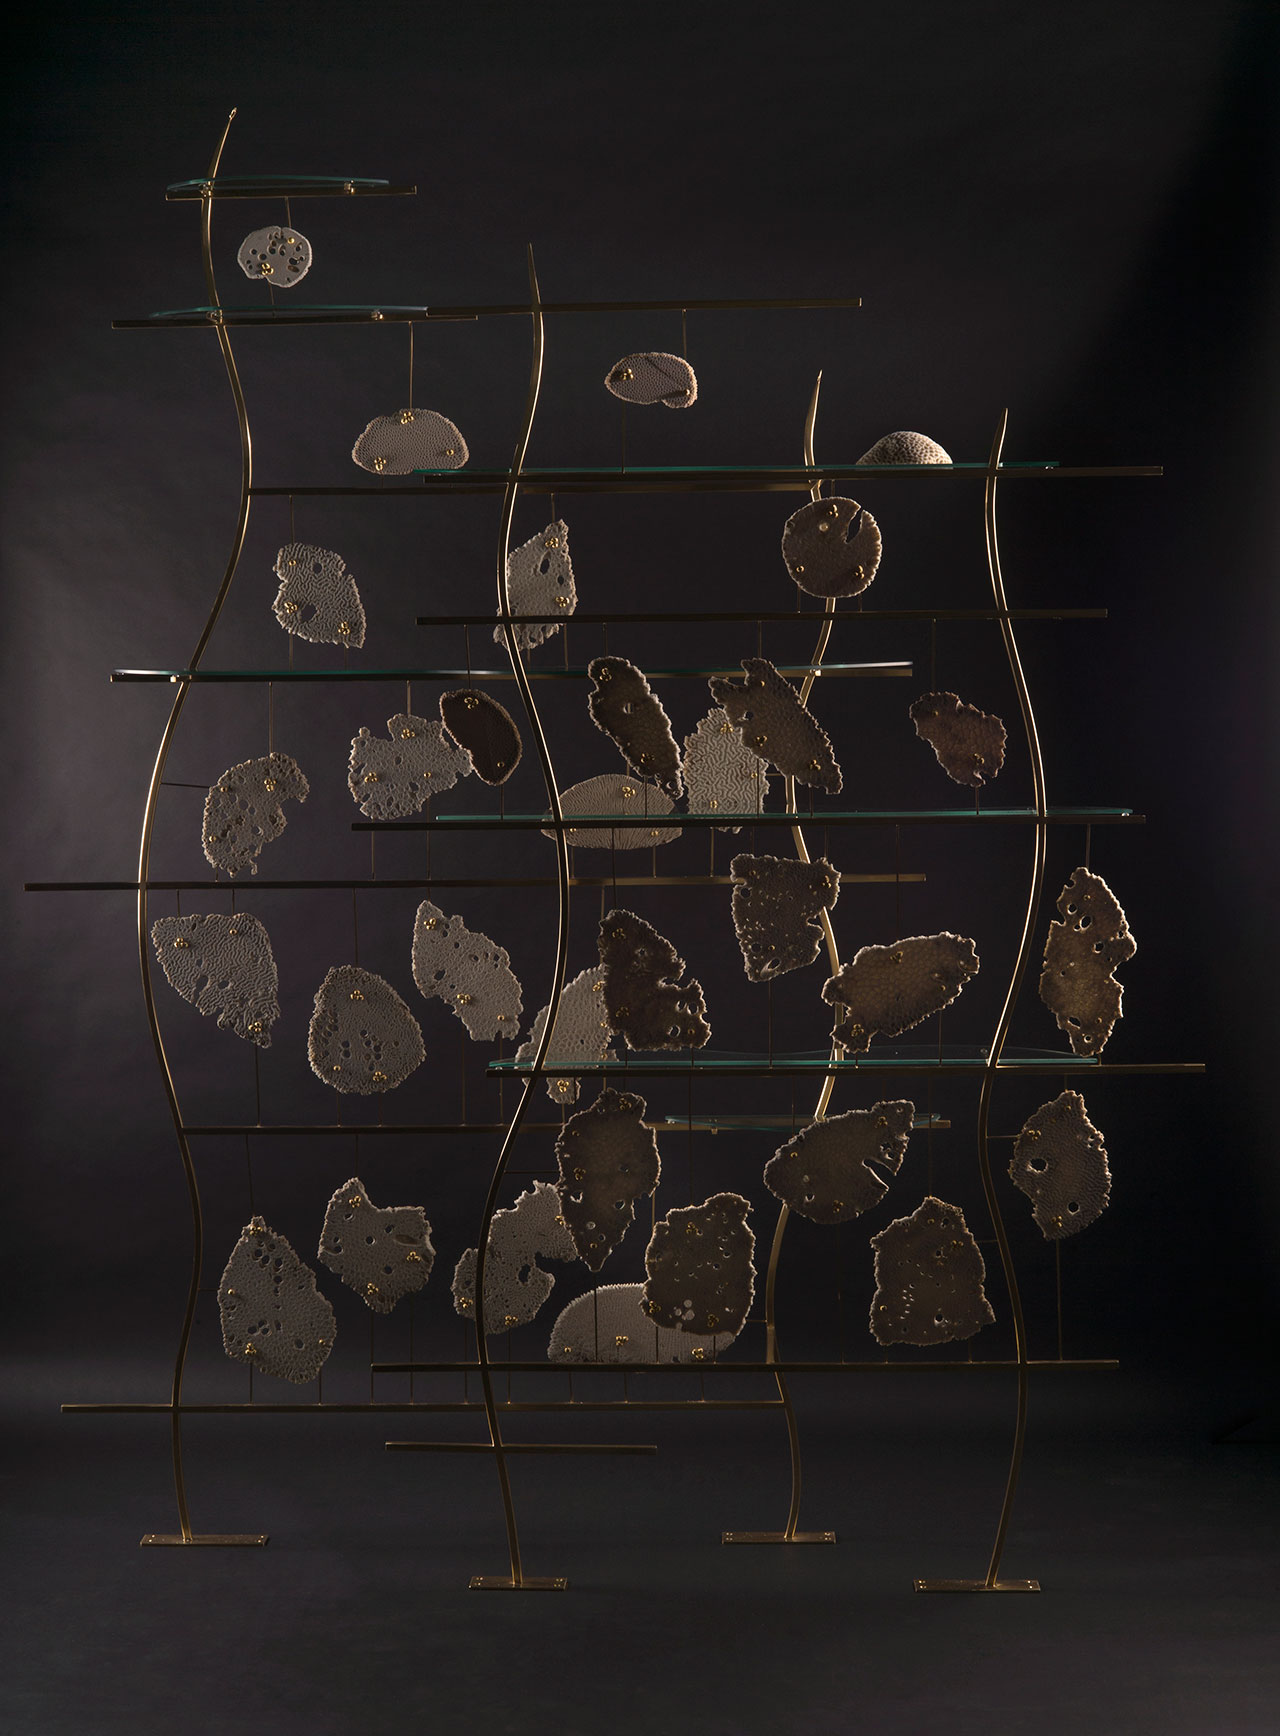 Coral I Room Divider by Zuleika Penniman, 2016. Reclaimed coral, gold, steel. 200 x 30 x 225 cm. Photo courtesy of the designer and Tashkeel.